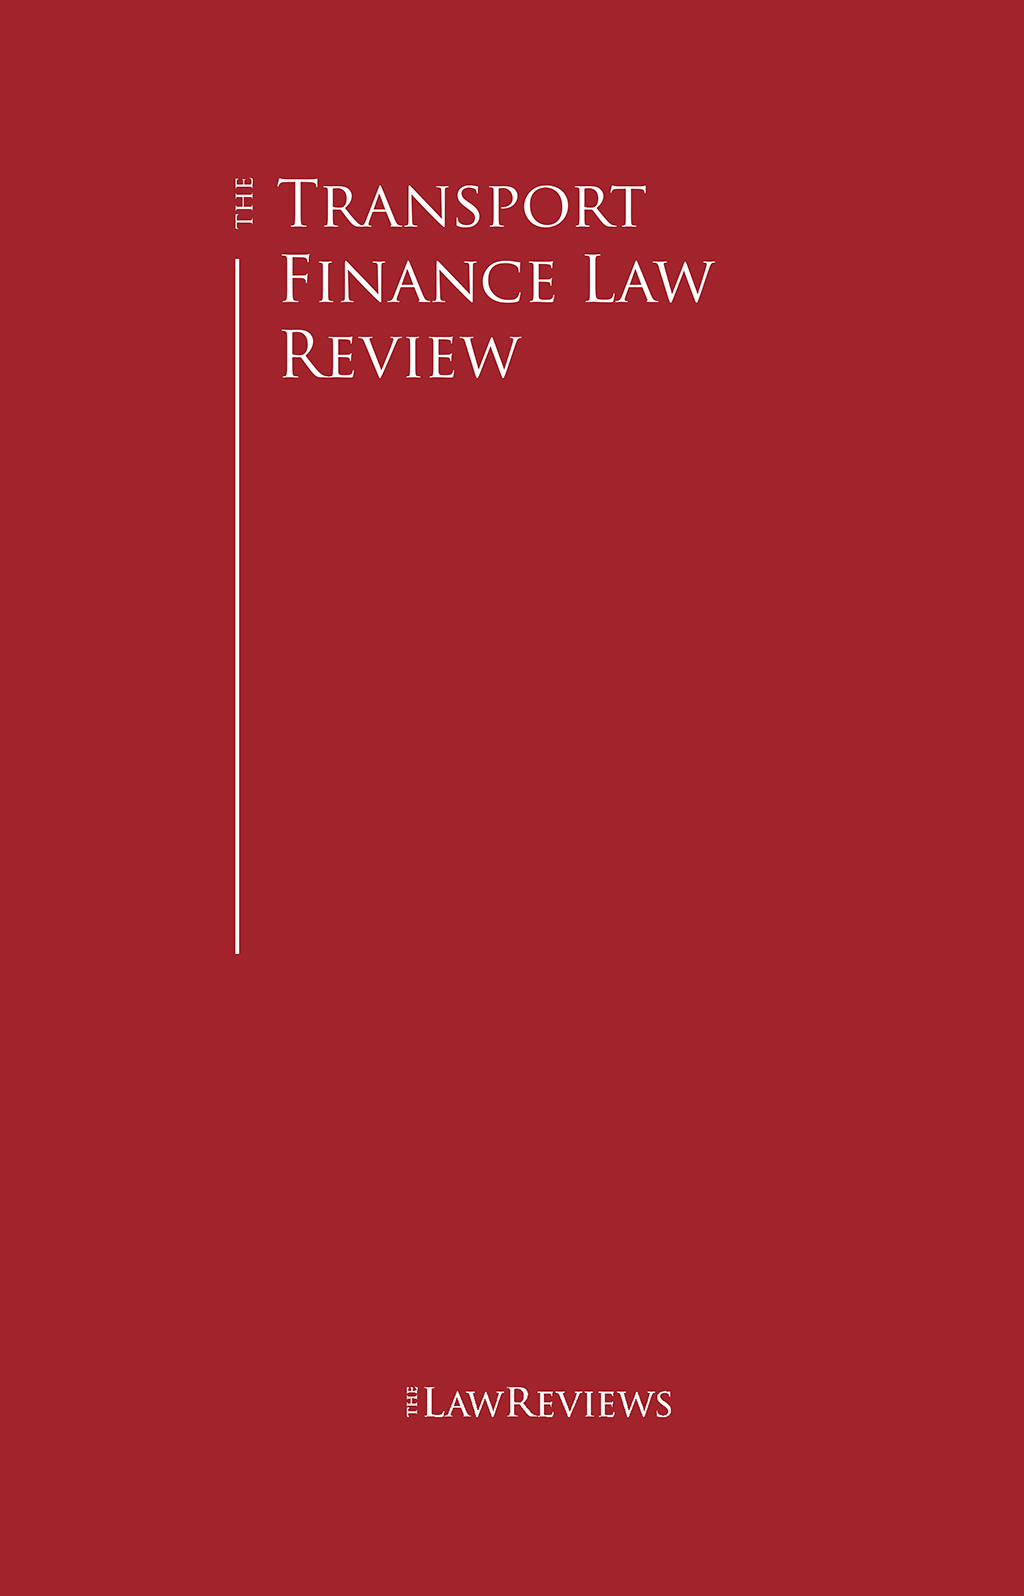 The Transport Finance Law Review